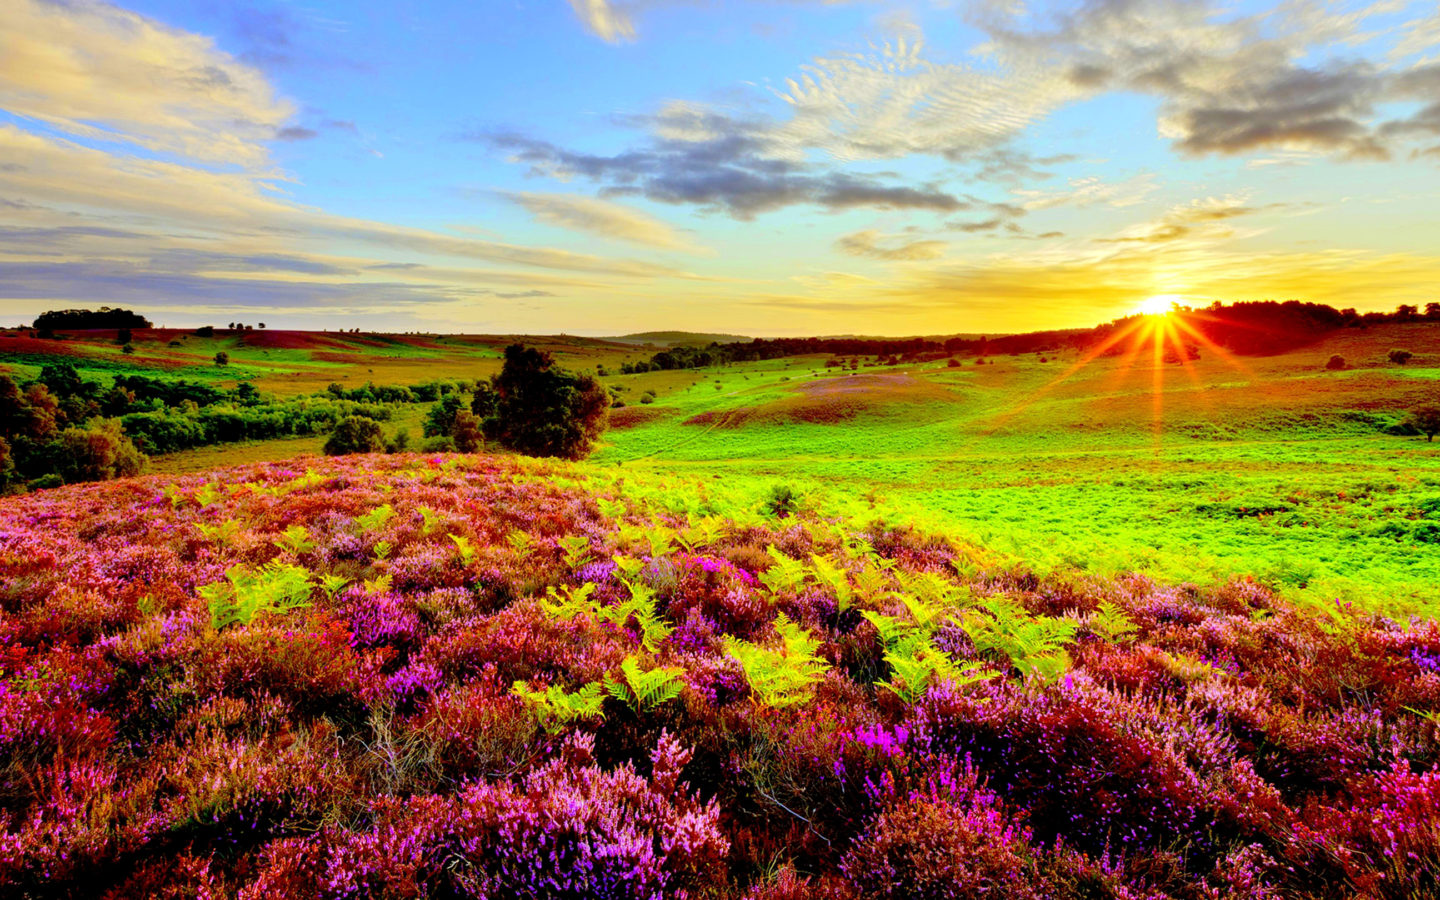 Hd Fall Wallpaper Iphone 5 Nature Purple Flowers Green Grass Meadow With Sun Rays